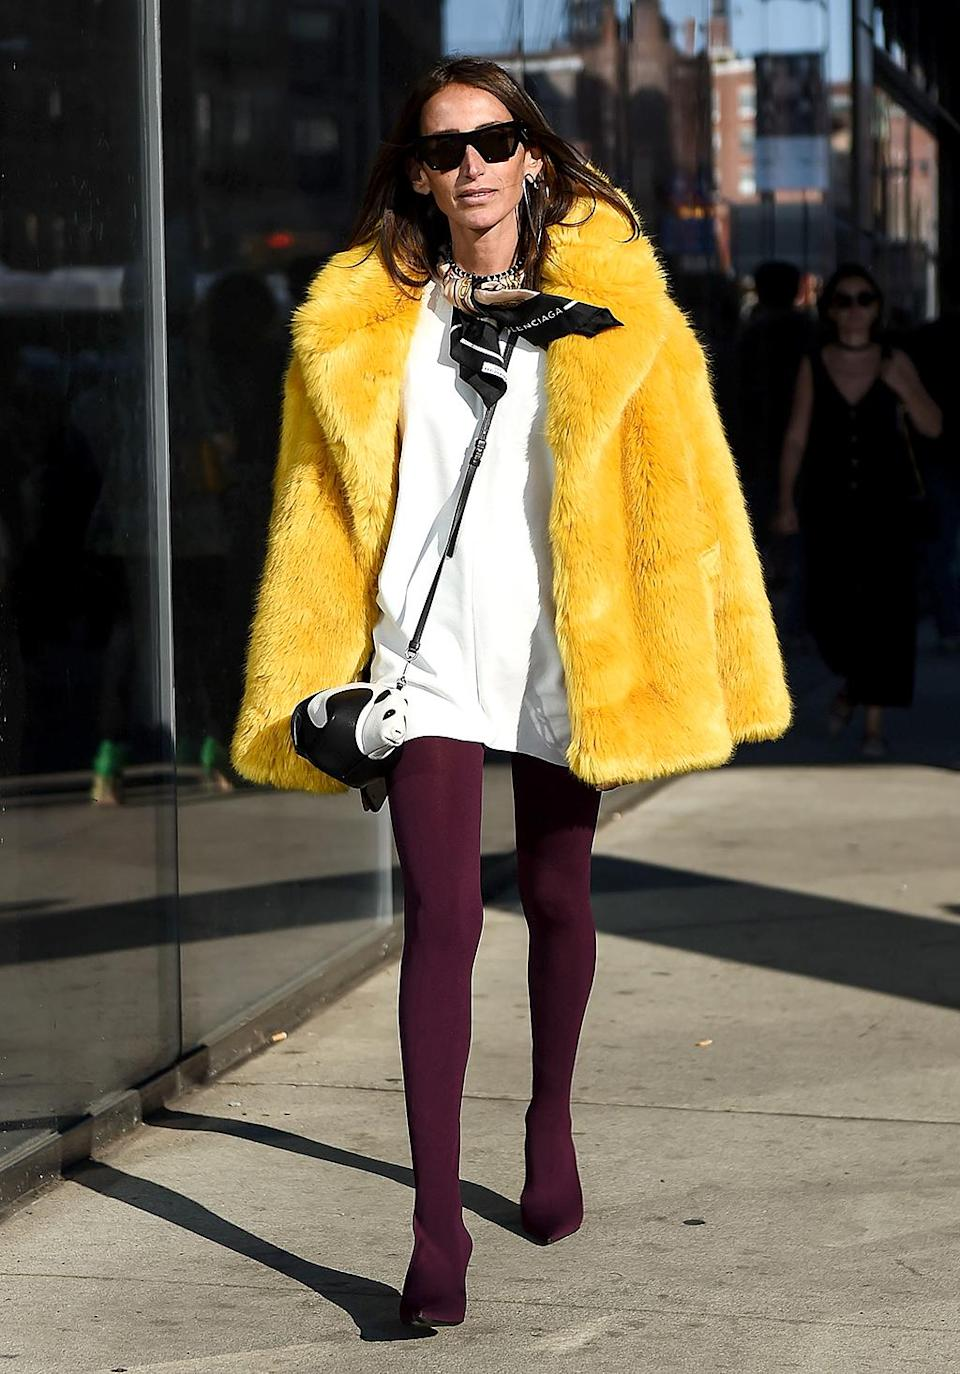 Loulou De Saison bundles up in a yellow fur coat. (Photo: Daniel Zuchnik/Getty Images)